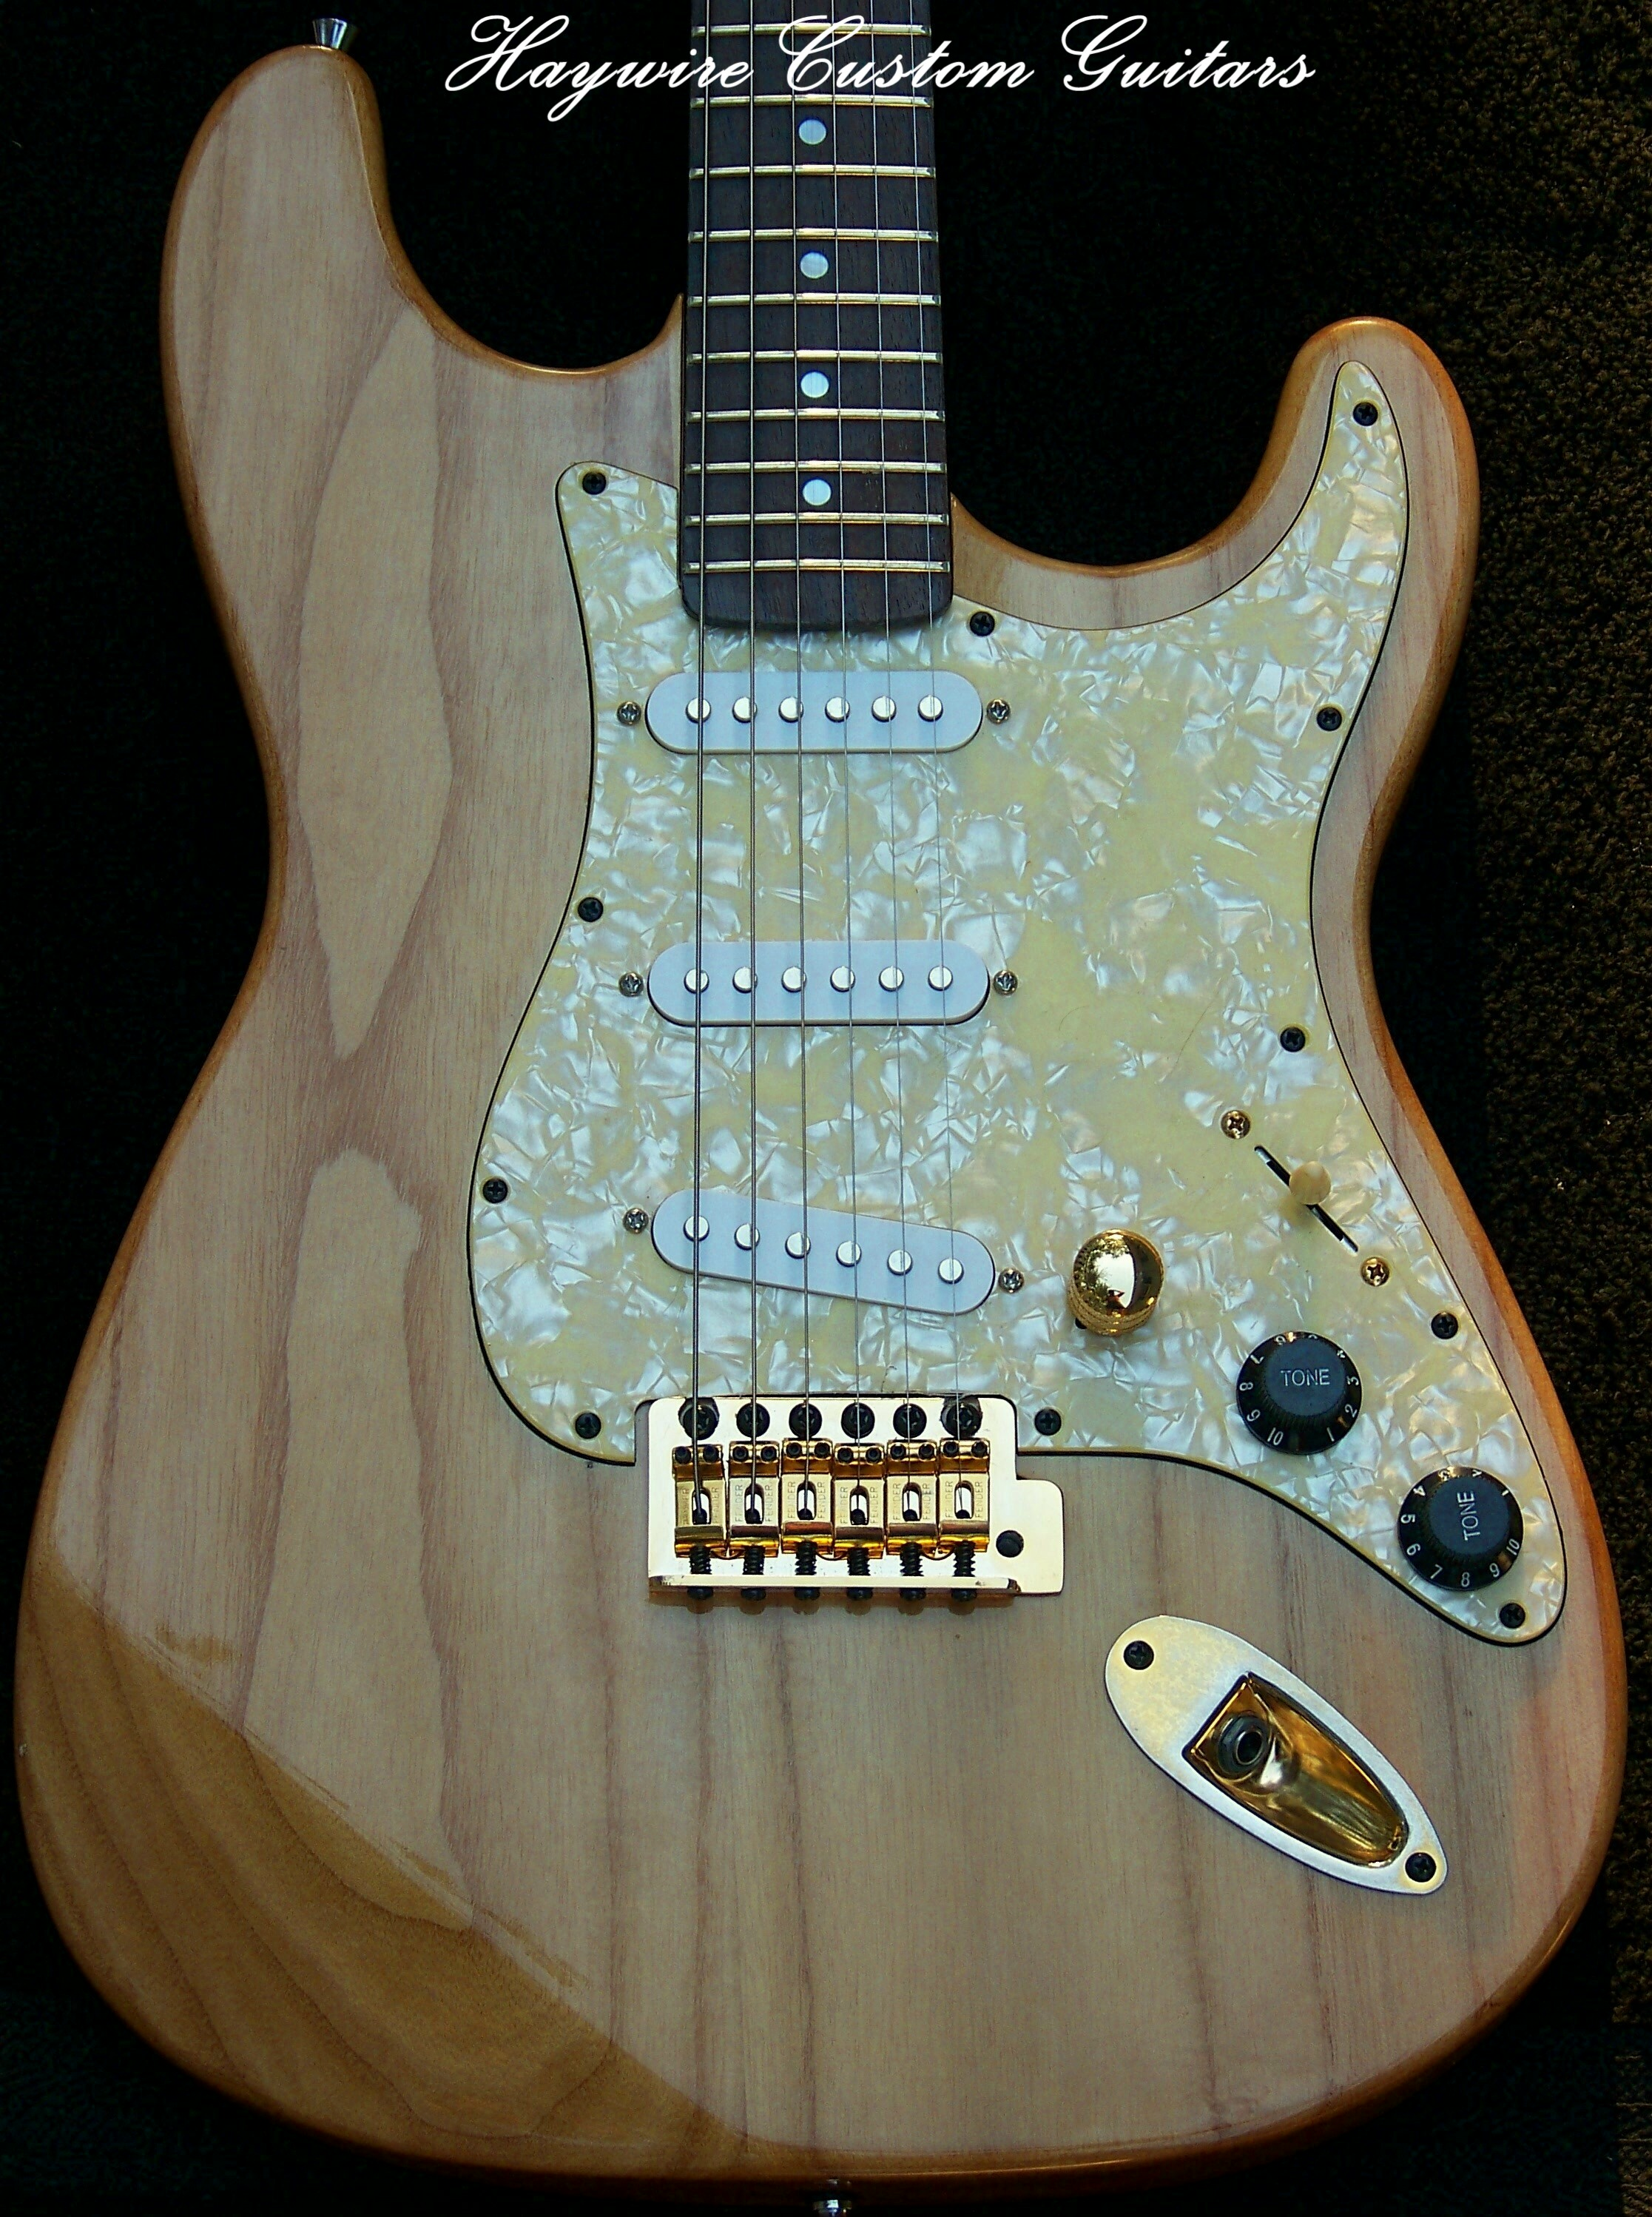 Swamp Ash Natural Body Guitars FromSwamp Ash Natural Body Guitars From The Haywire Custom Shop